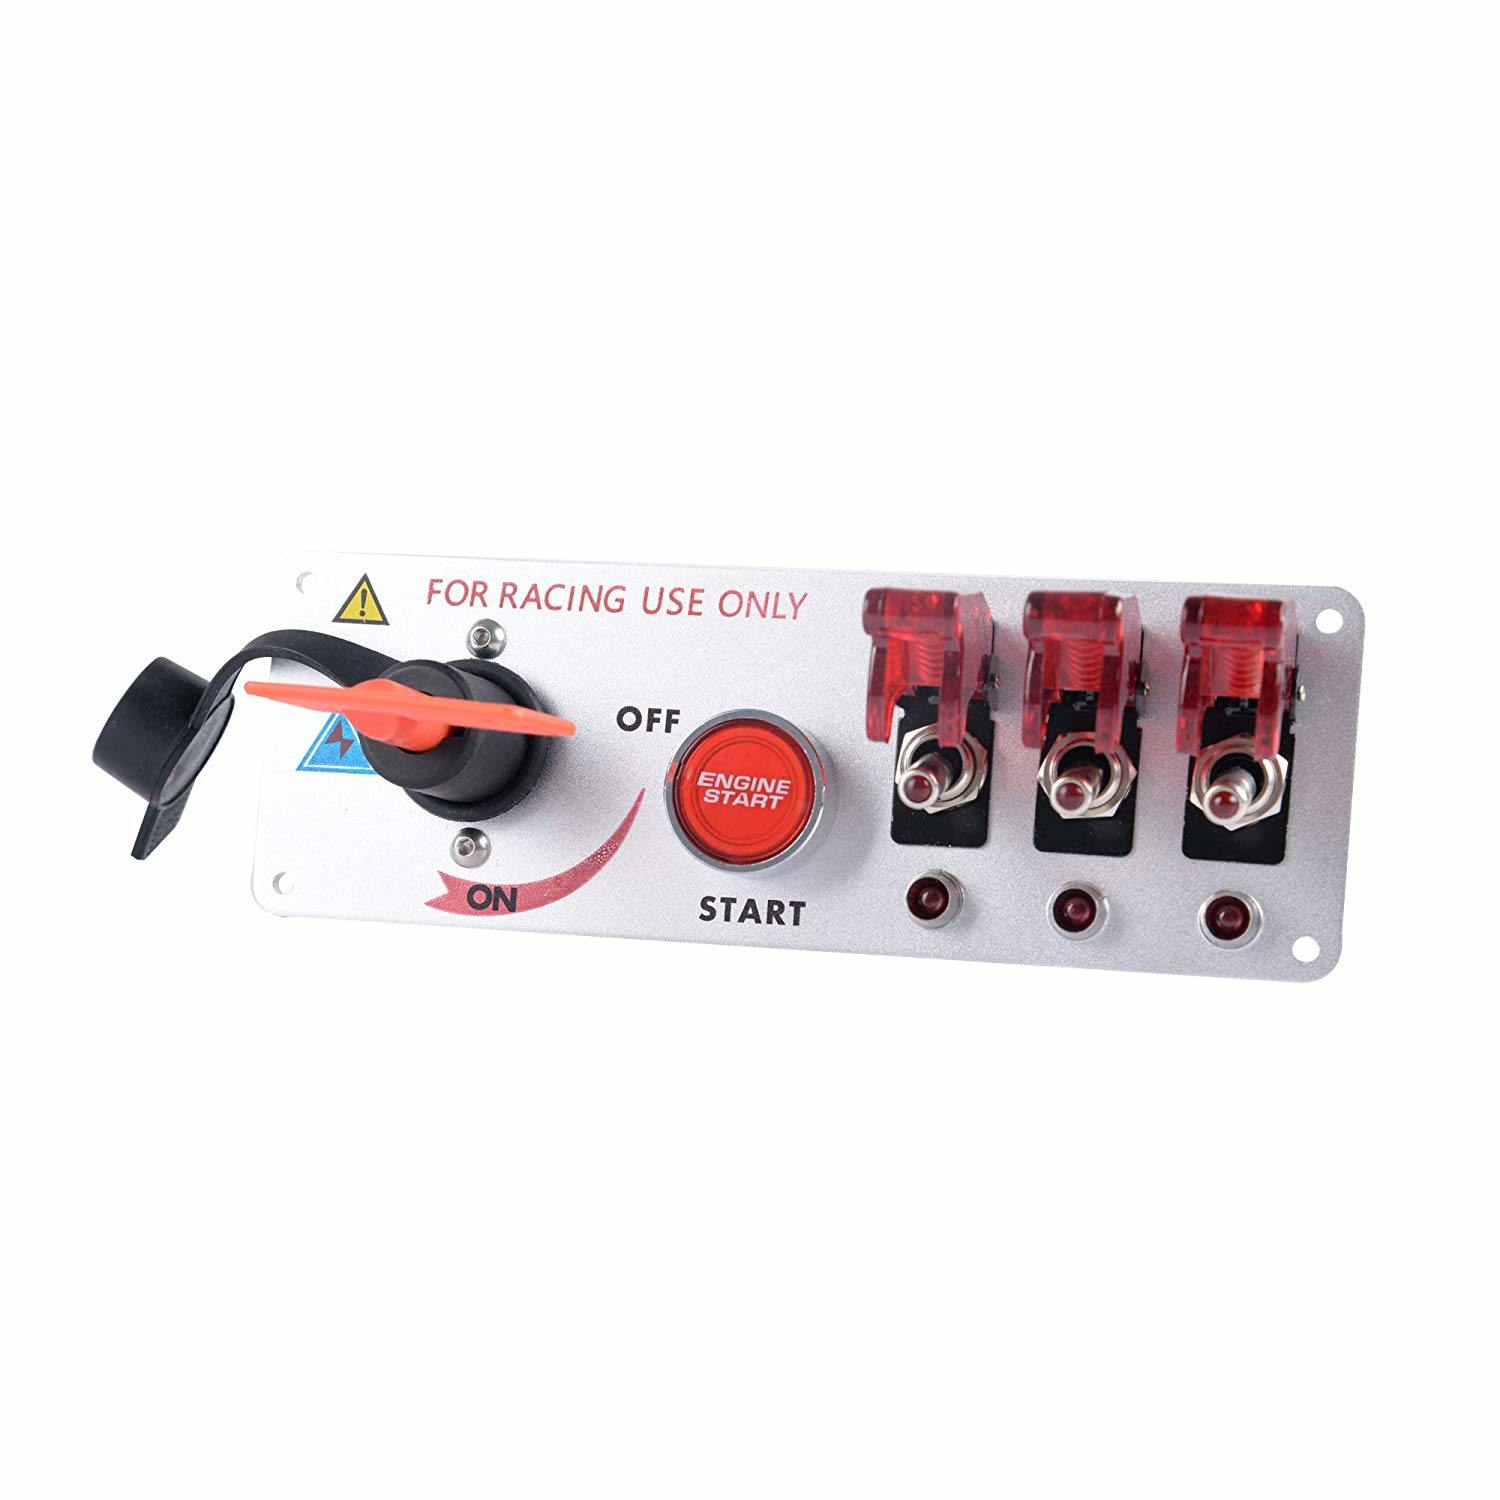 12V Ignition Switch Panel Car Toggle Switch for Racing Sport Competitive Car